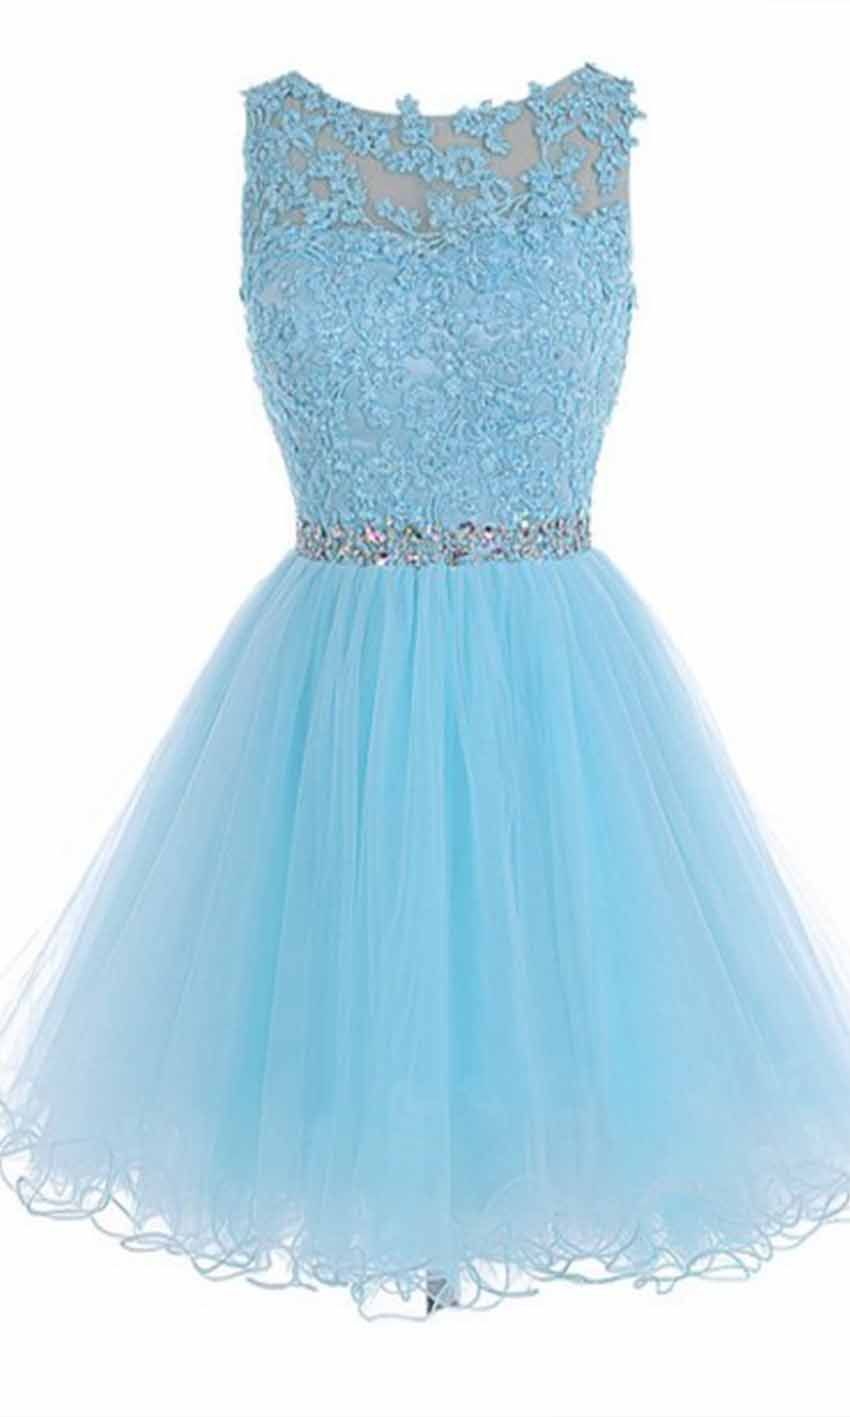 Sky blue high illusion short lace prom dresses ksp dress in